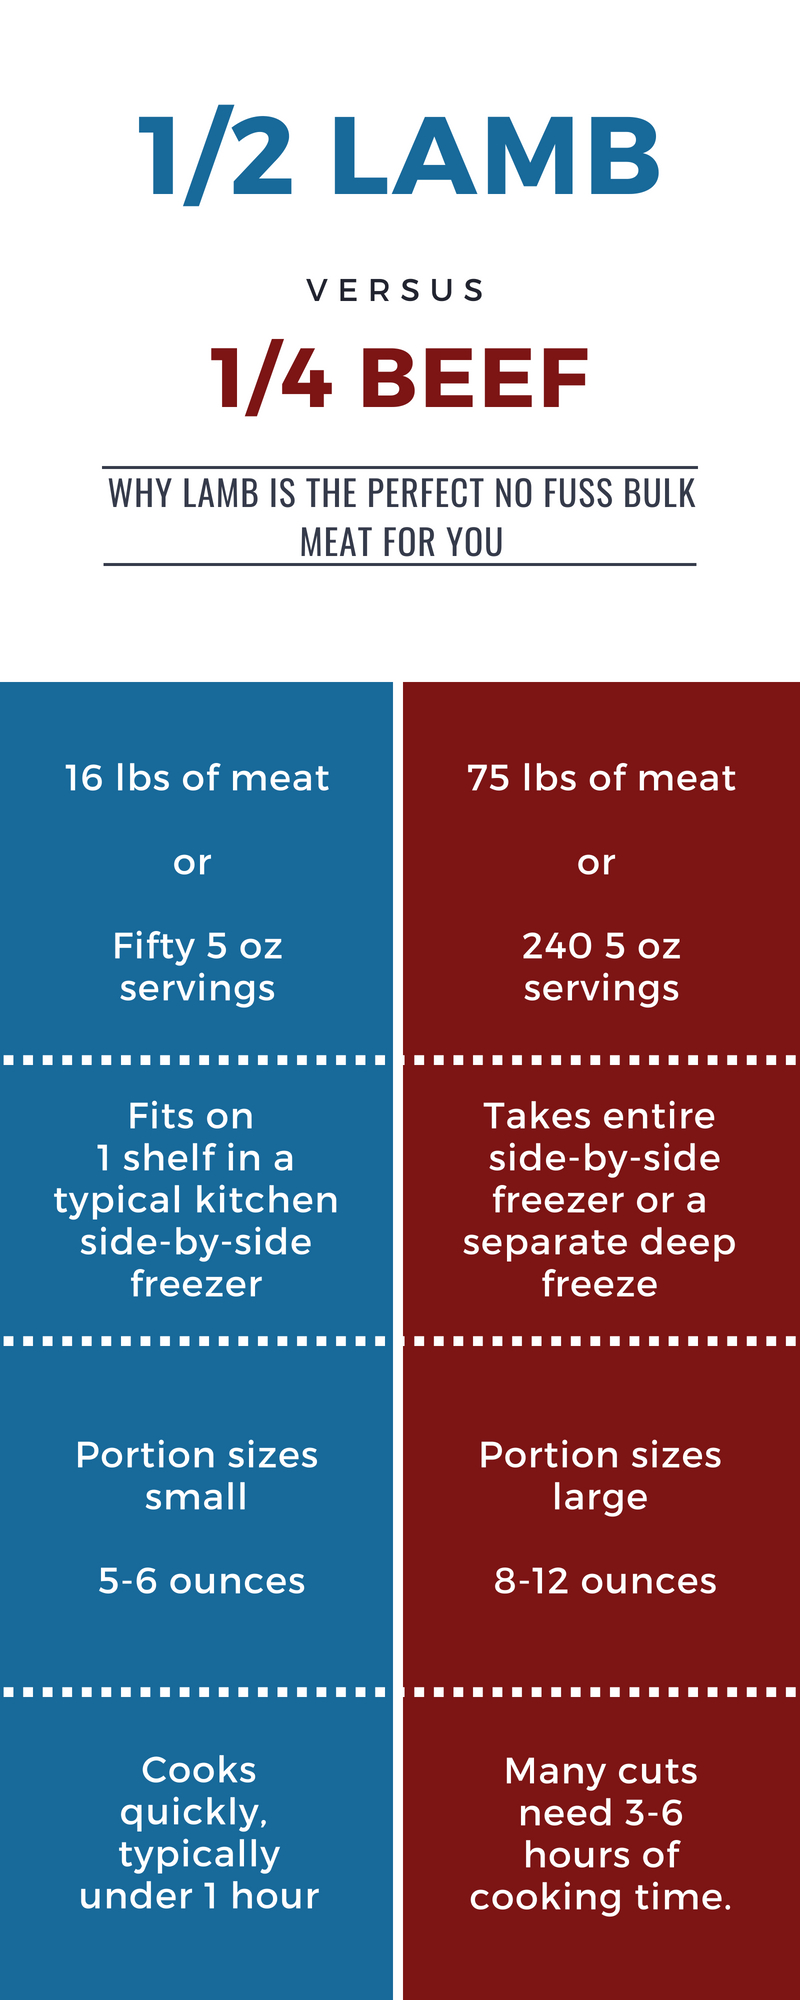 Lamb Vs Beef Graphic.jpg